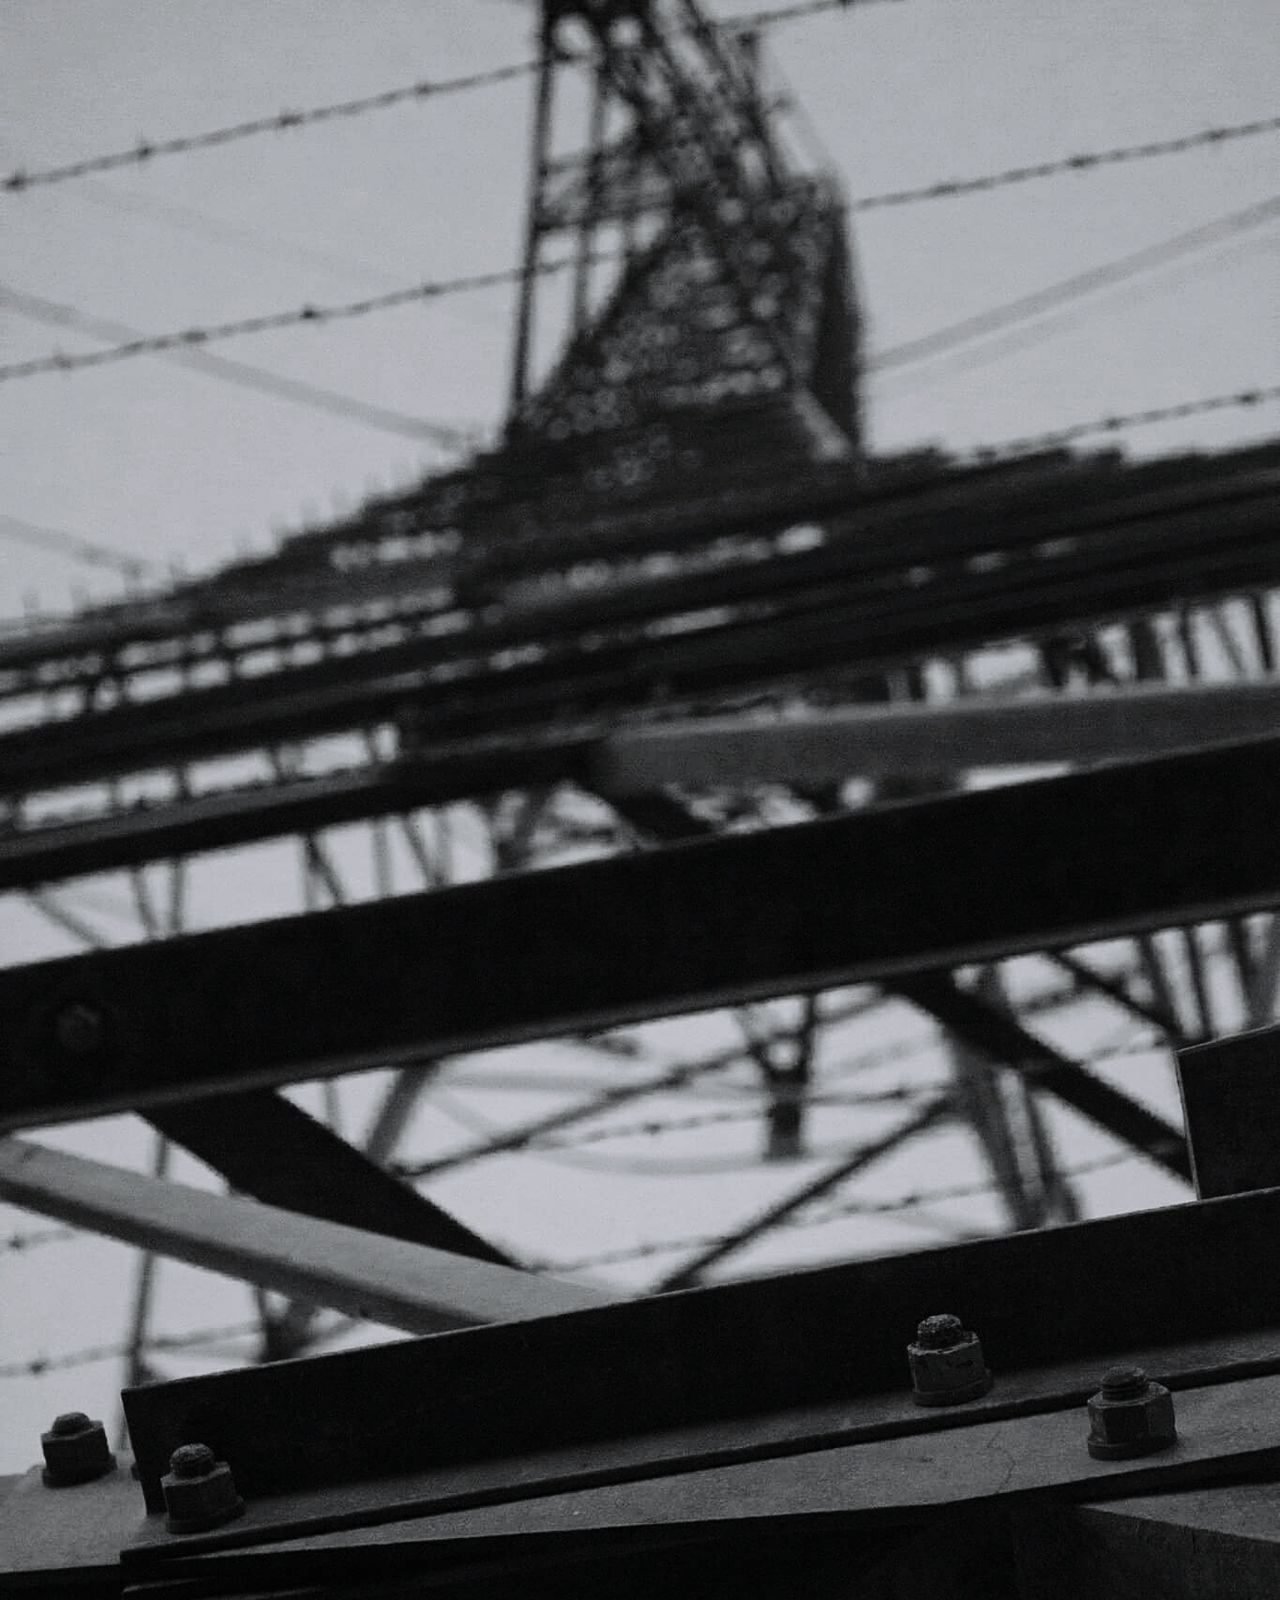 Connection No People Outdoors Day Architecture Sky Grid Metal Technology Silhouette Girder Fuel And Power Generation Electricity  Power Supply Geometric Backgrounds Electricity Pylon Close-up